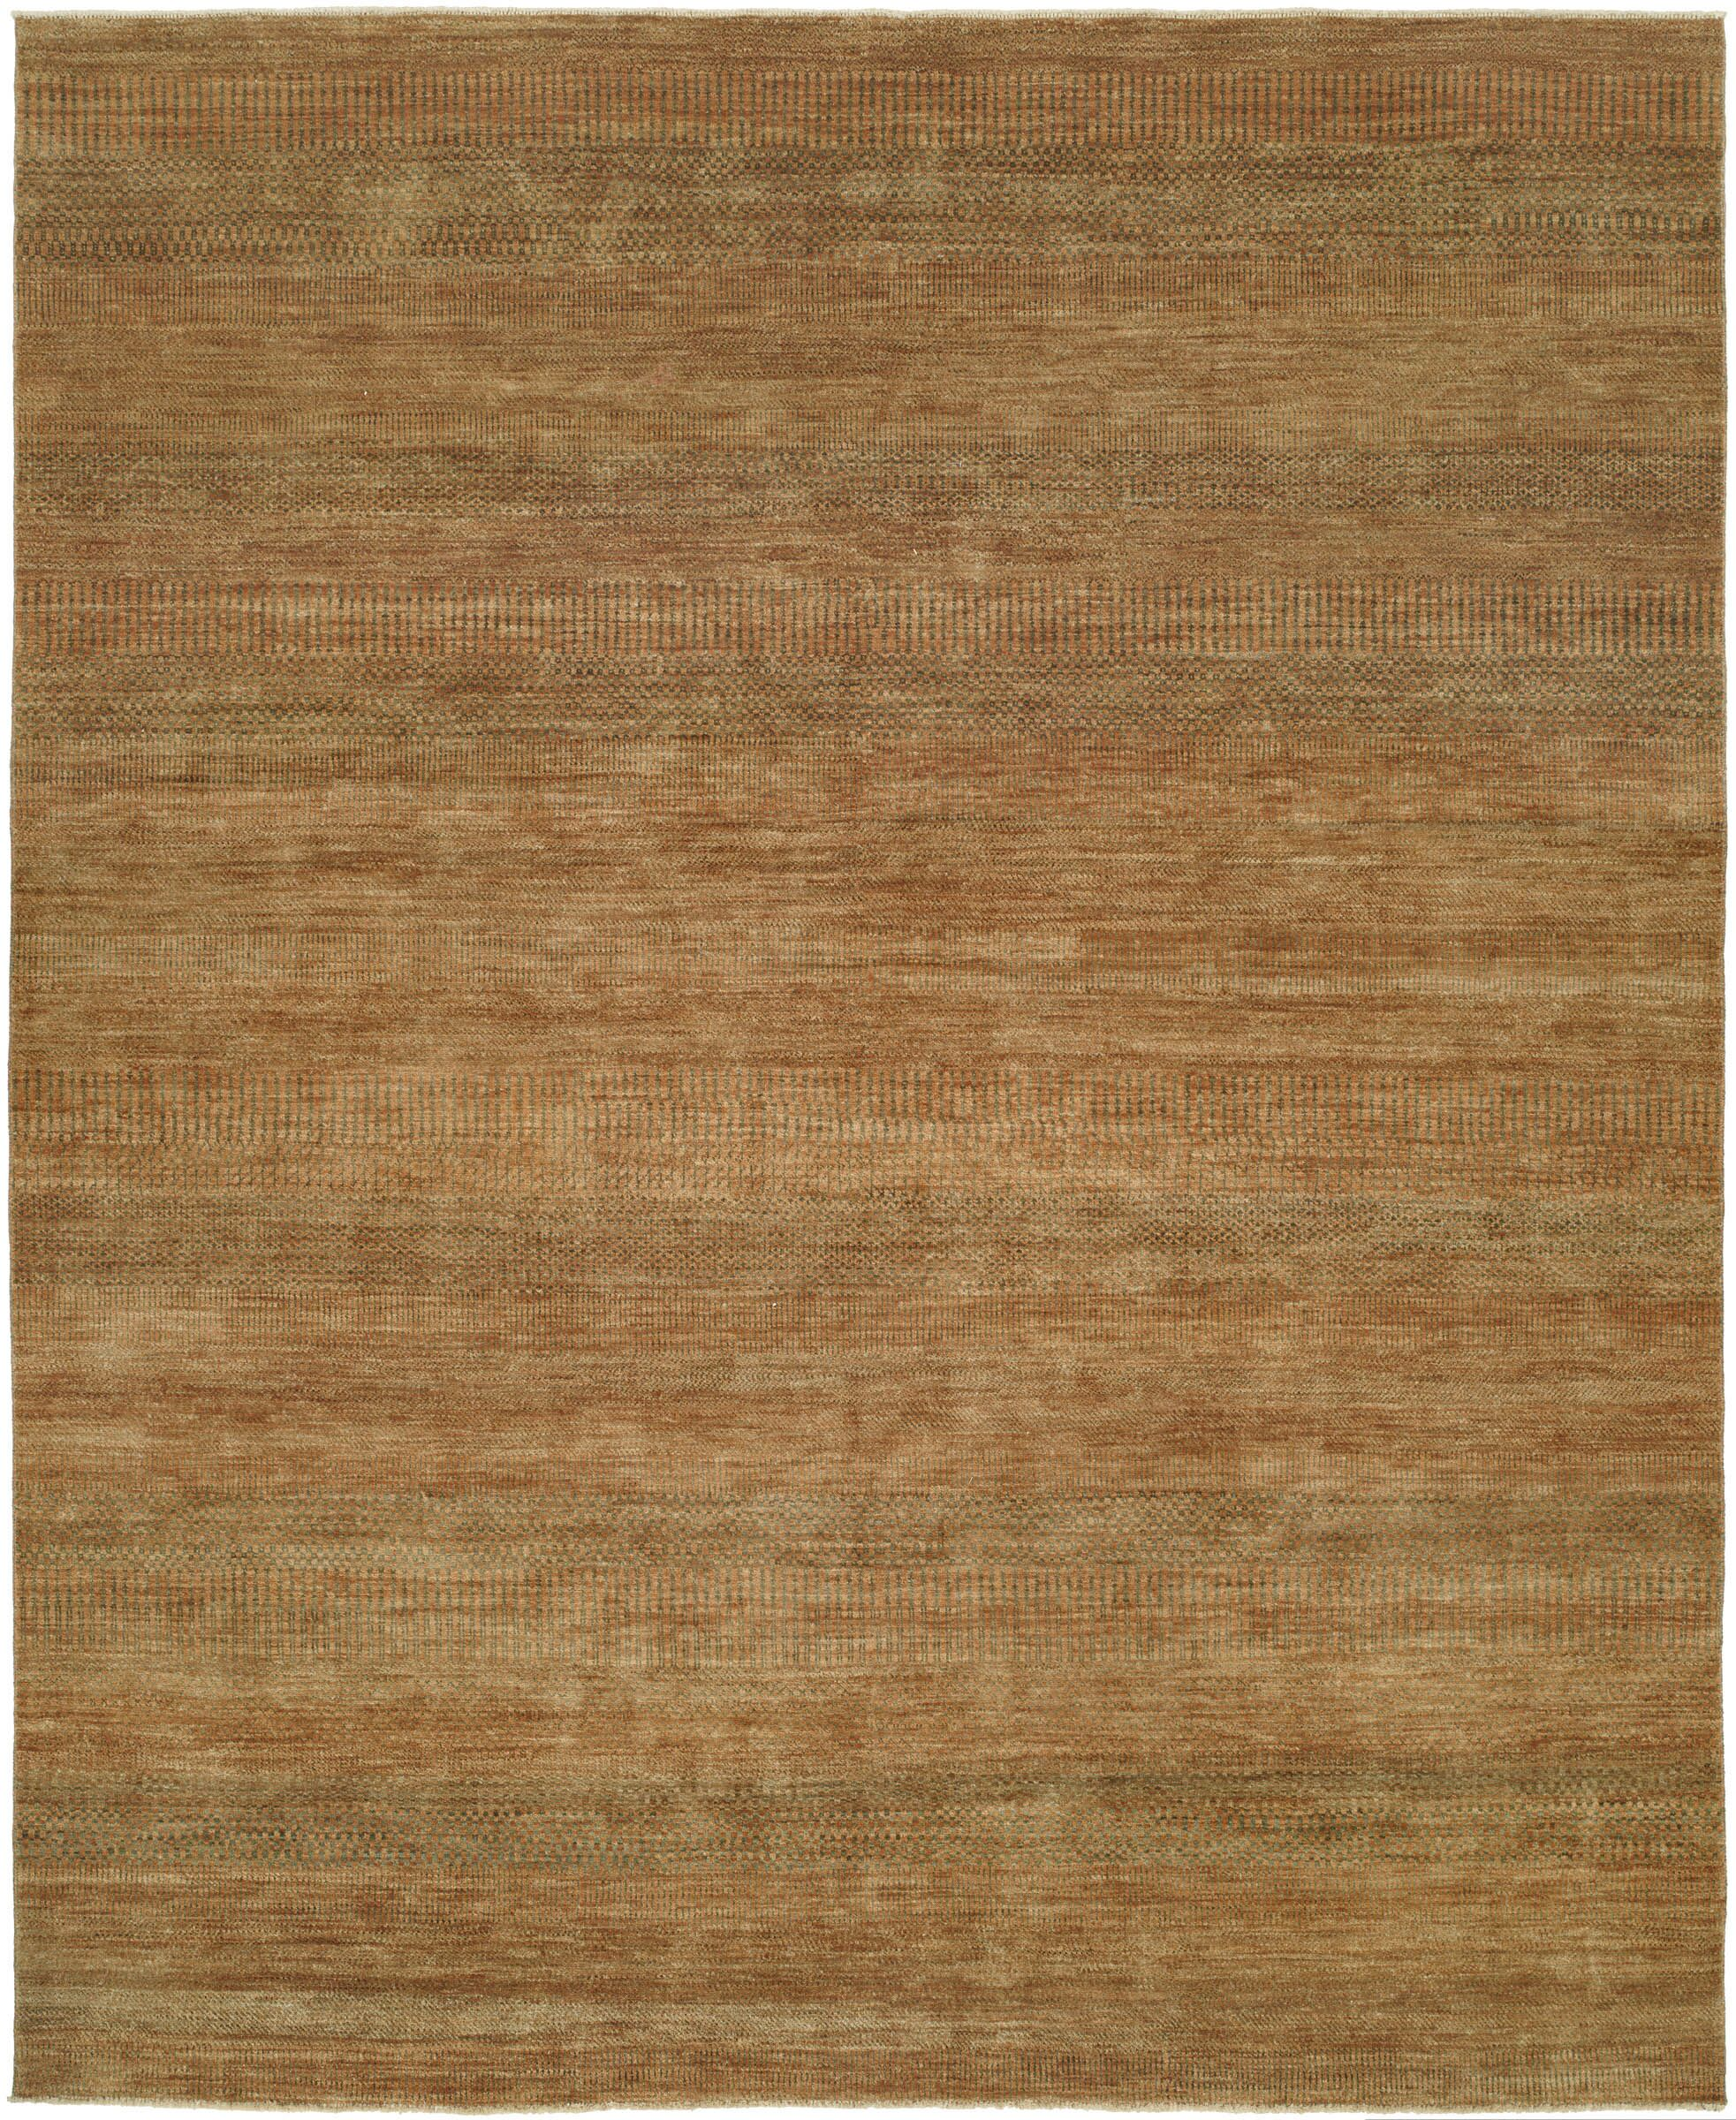 Illusions Gold/Green Area Rug Rug Size: 9' x 12'